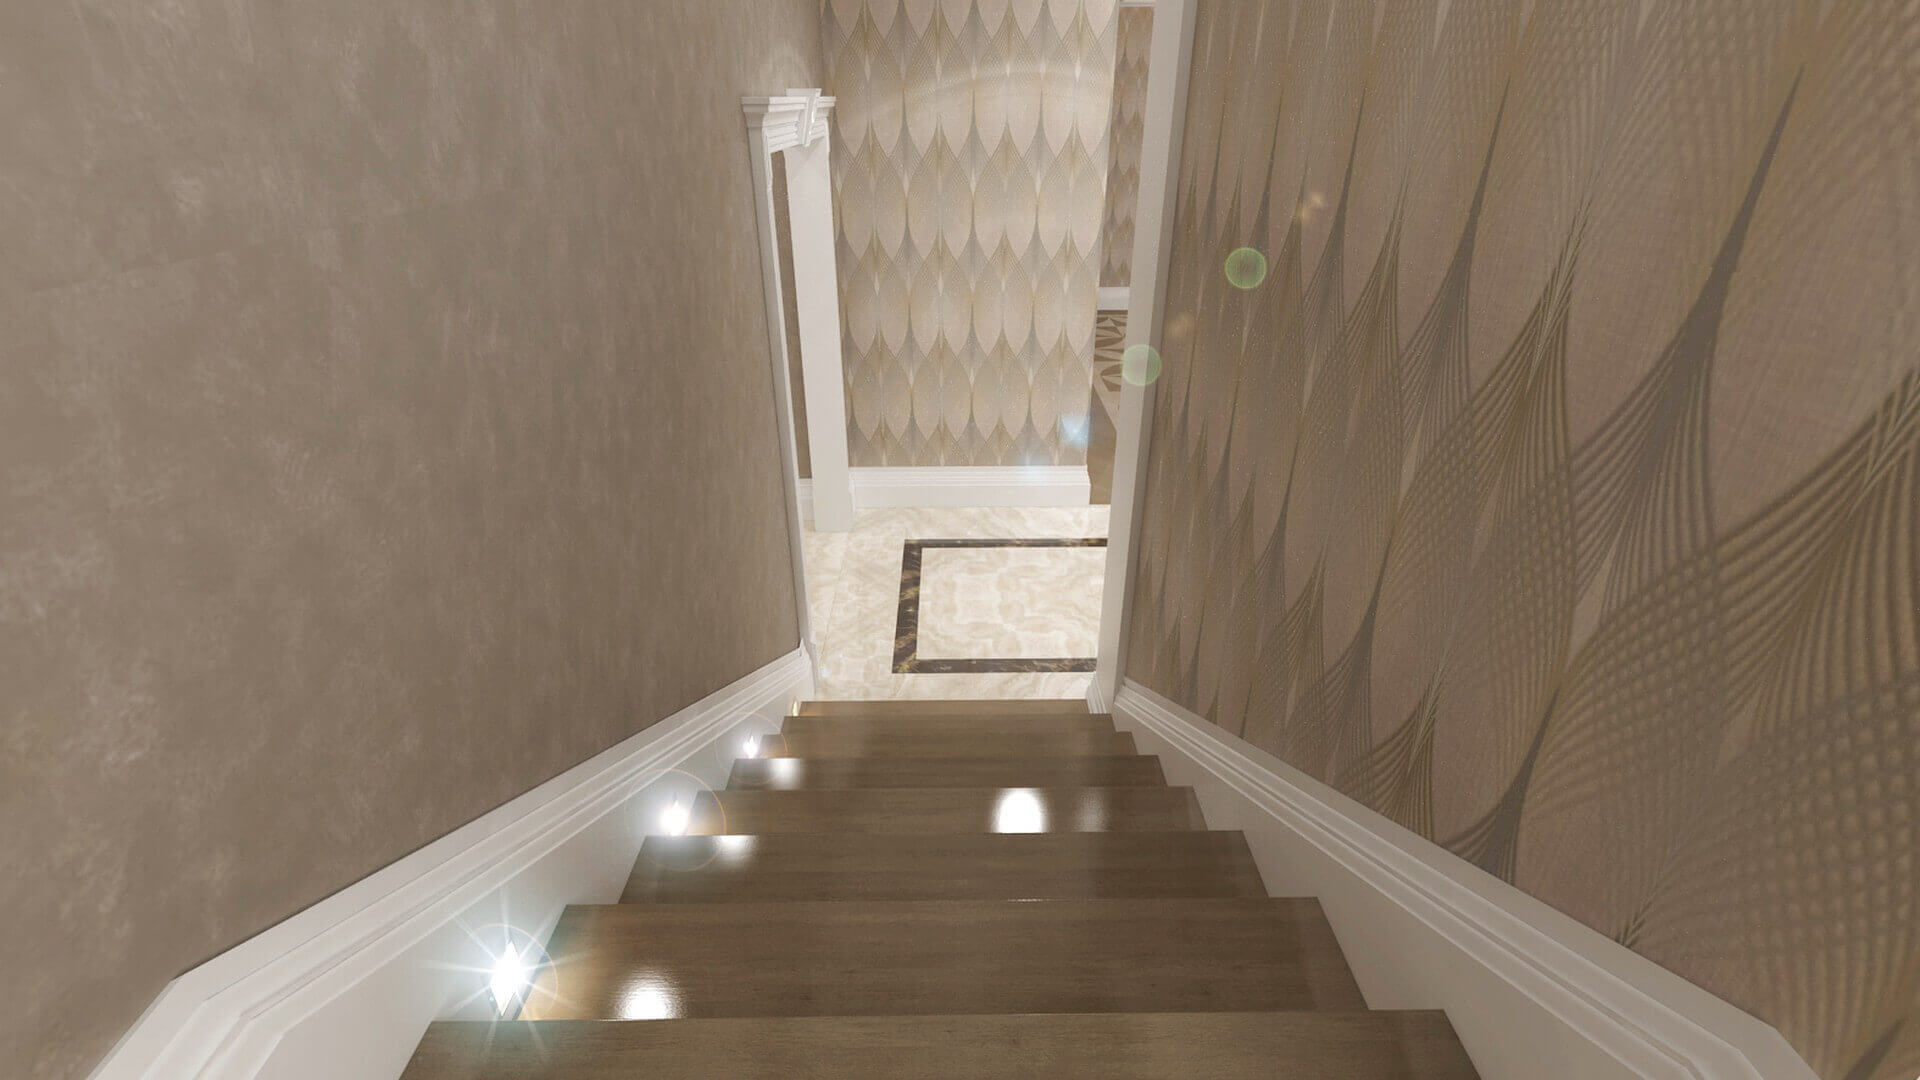 Ankara house projects 2841 Private Project Residential